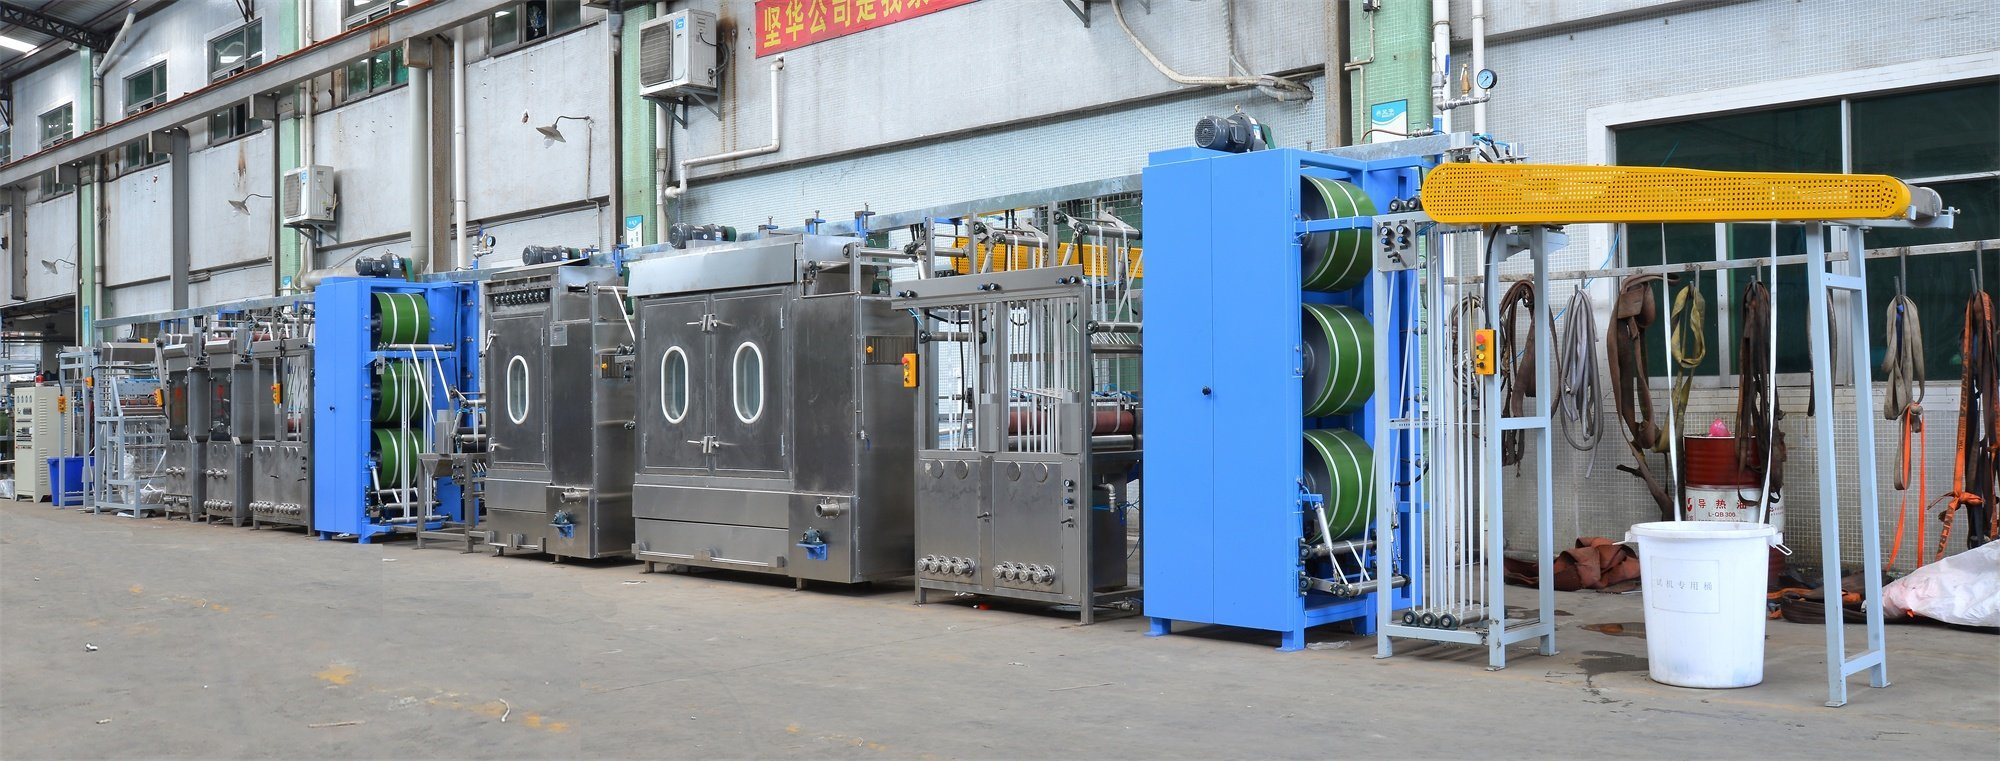 PriceList for Bra Tapes Pre-Shrinking Machine - Polyester Ribbons Continuous Dyeing Machine Kw-812-400 – Kin Wah